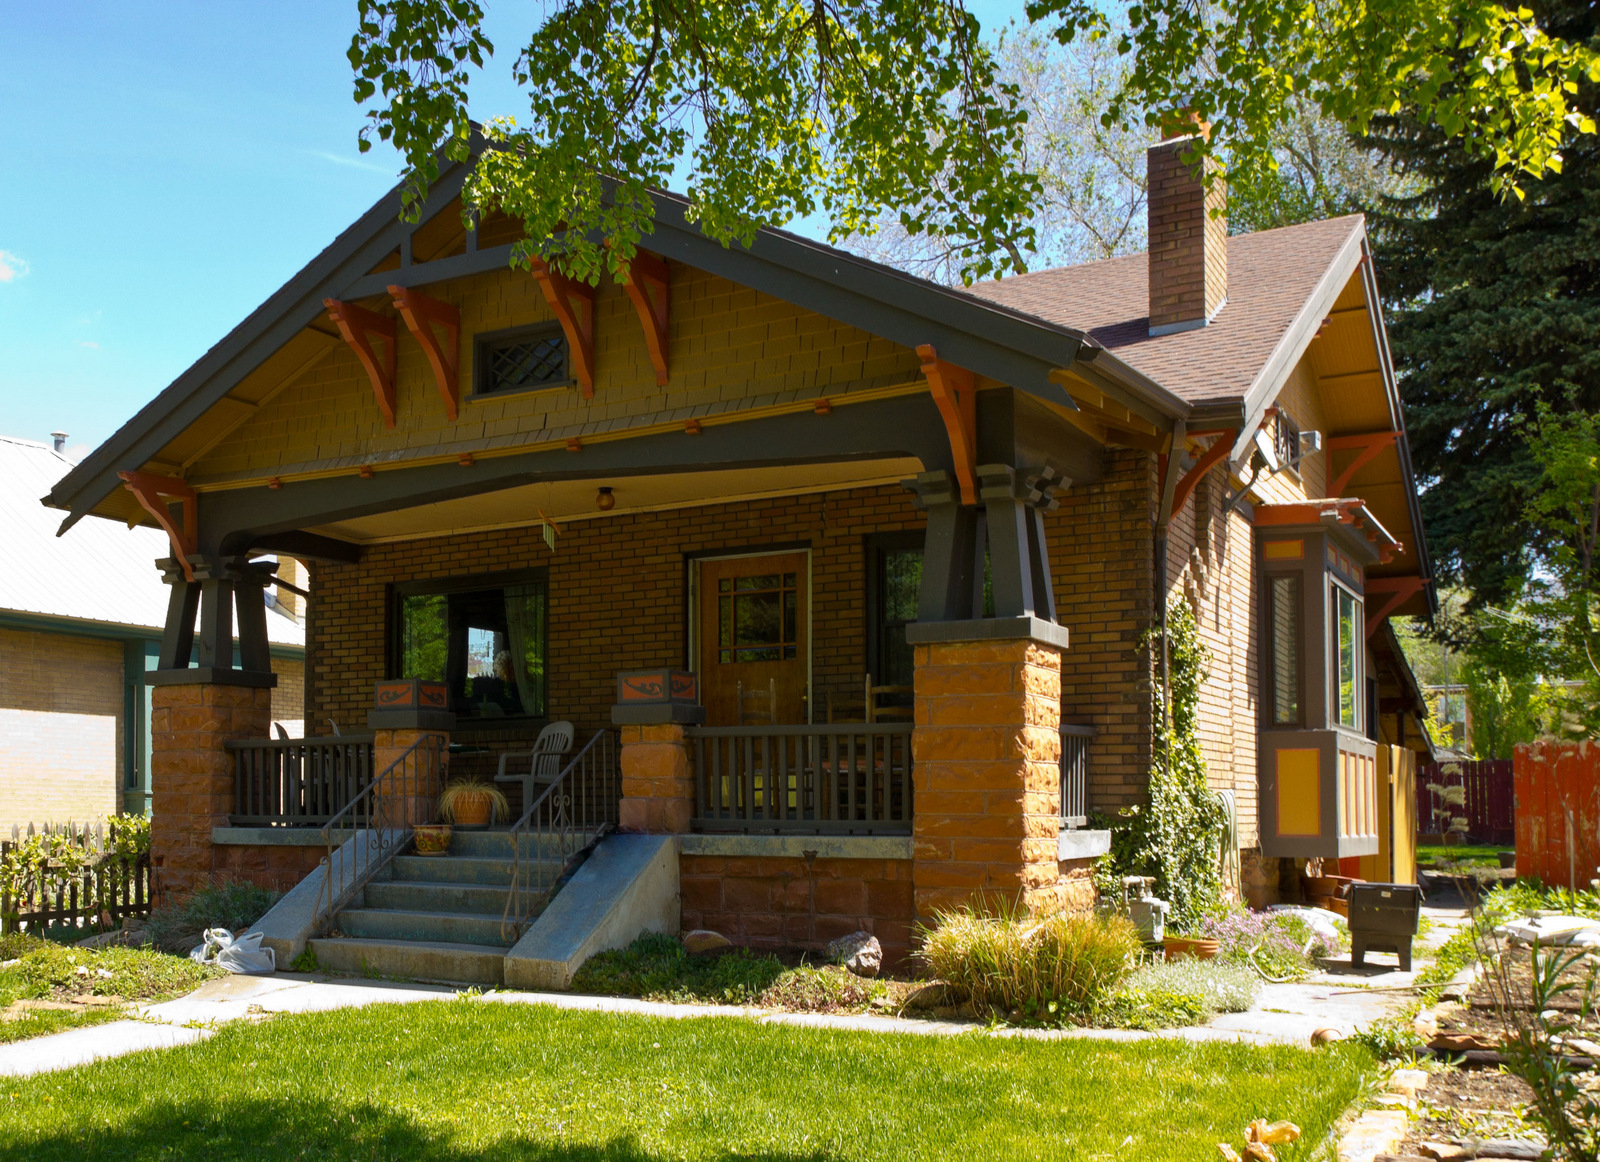 Craftsman bungalow home style rich american craftsman for American craftsman home plans